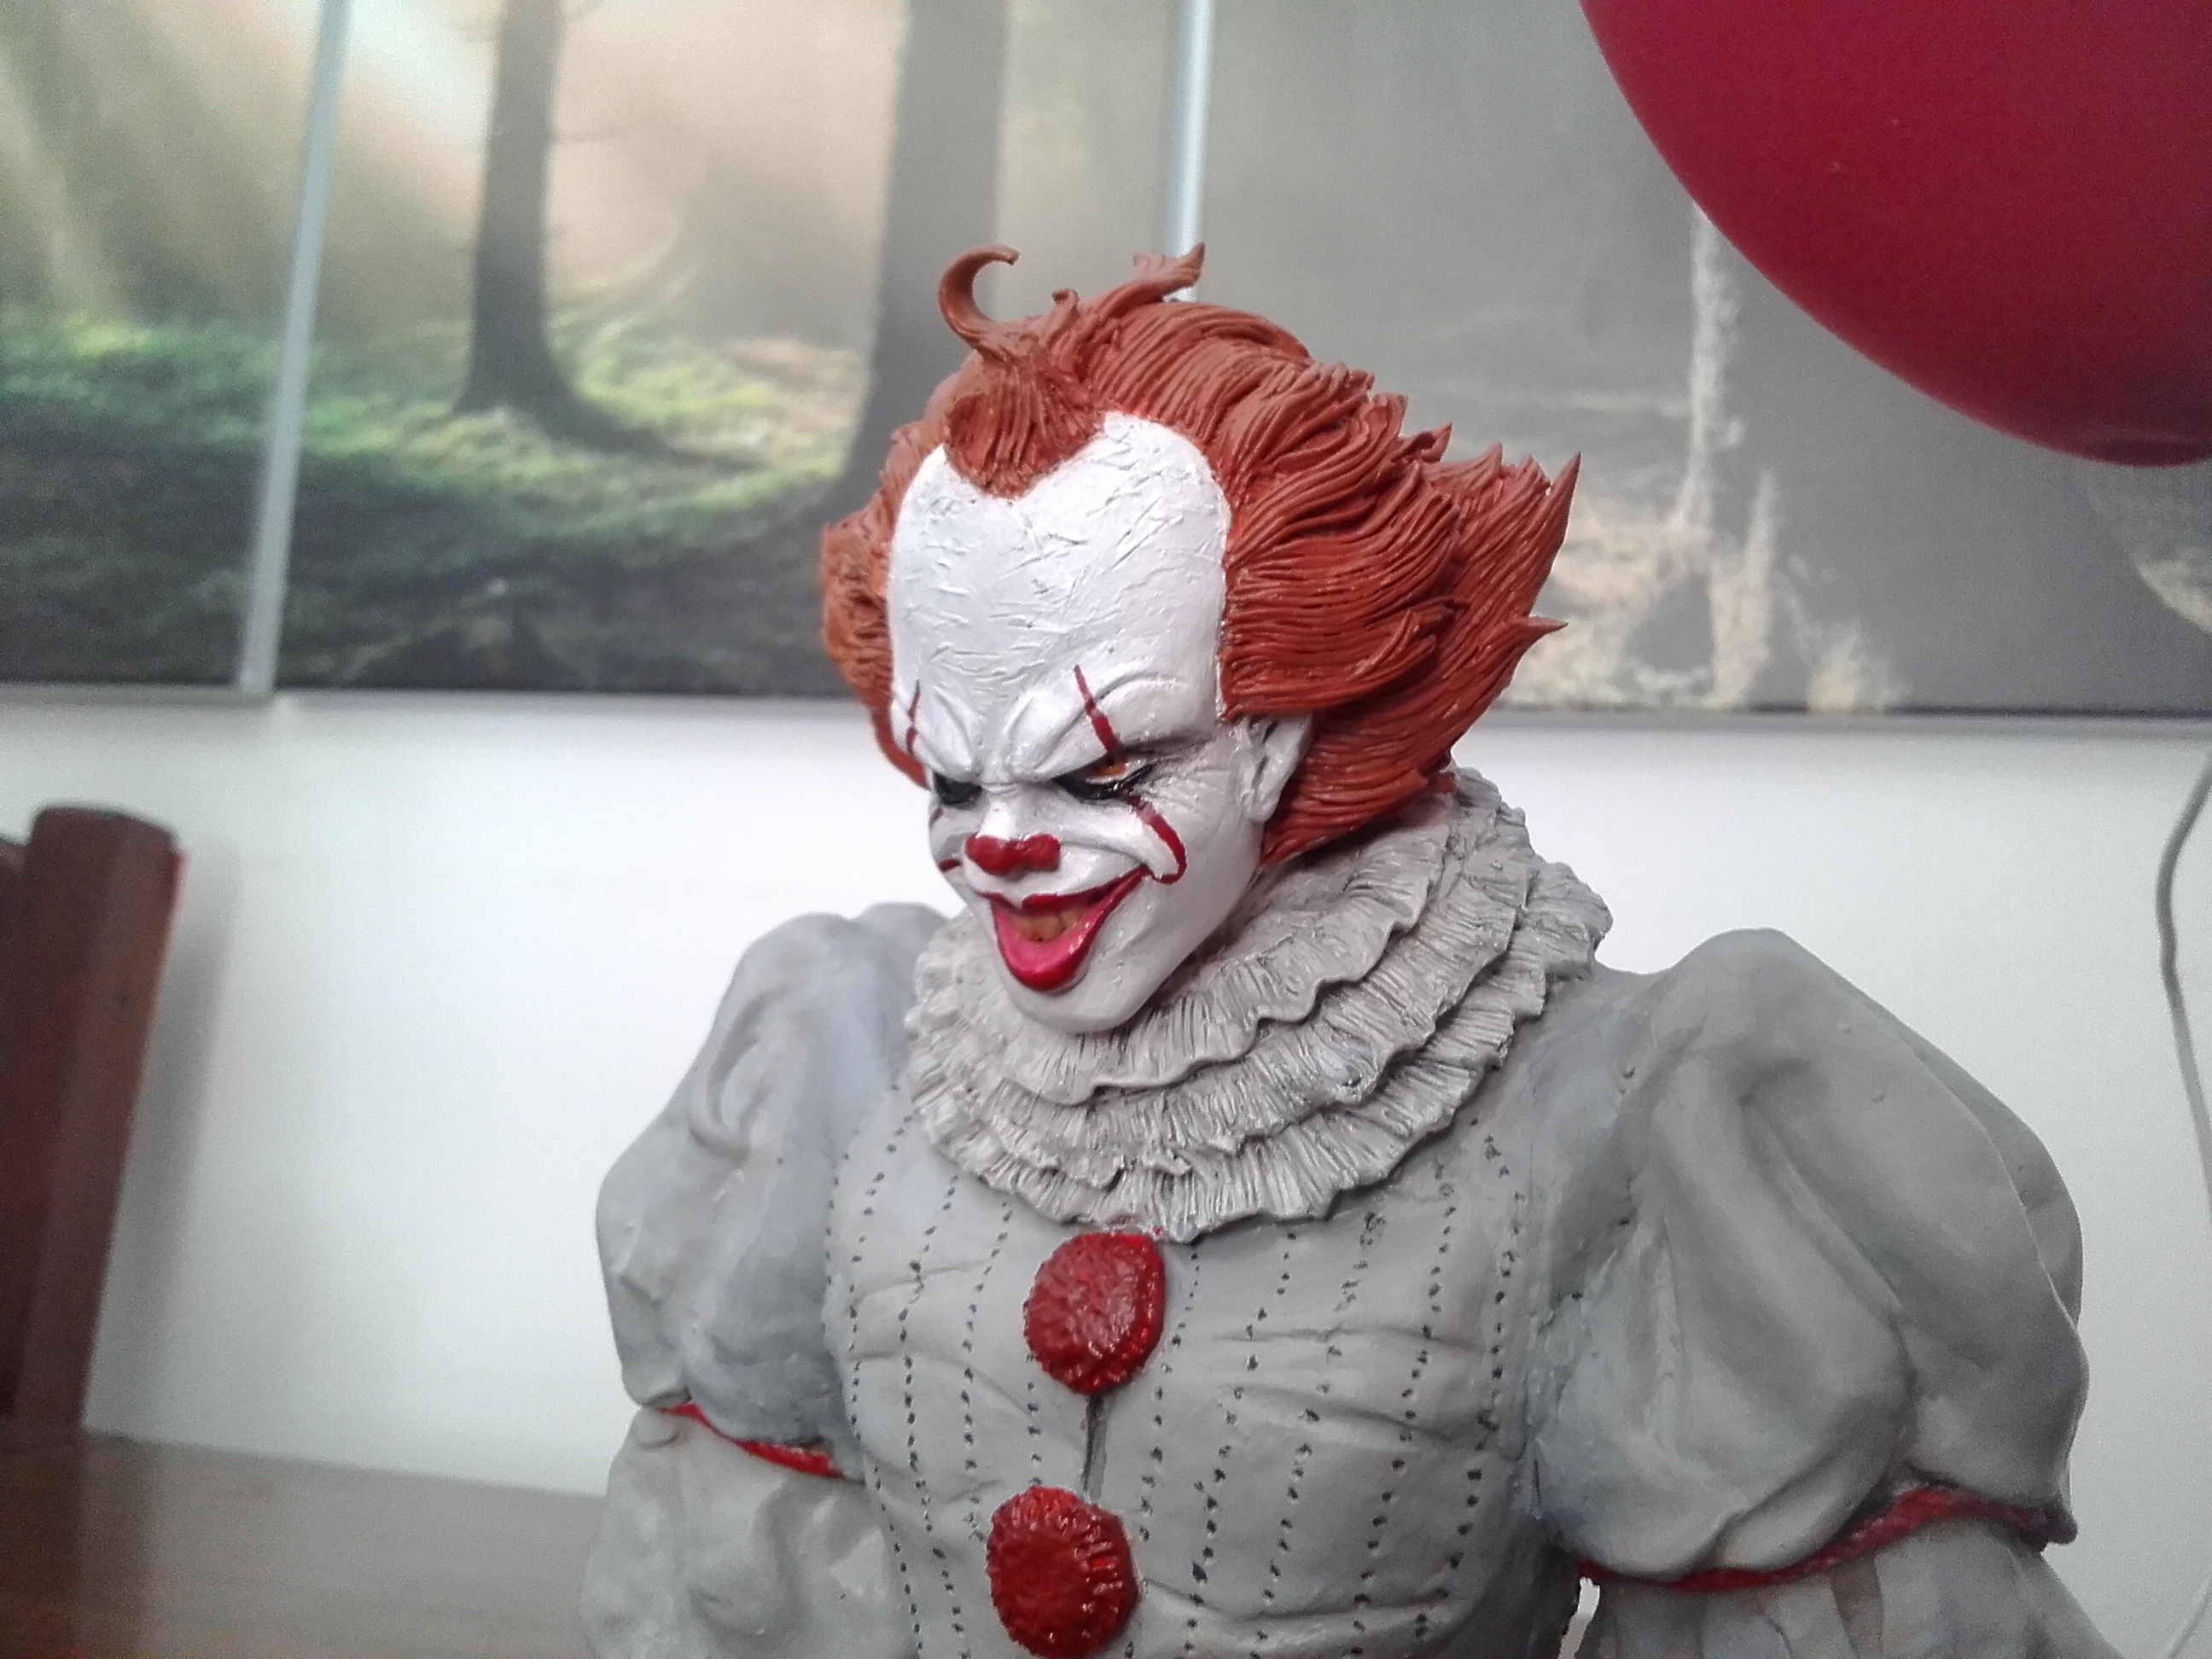 Mi escultura del Payaso de IT